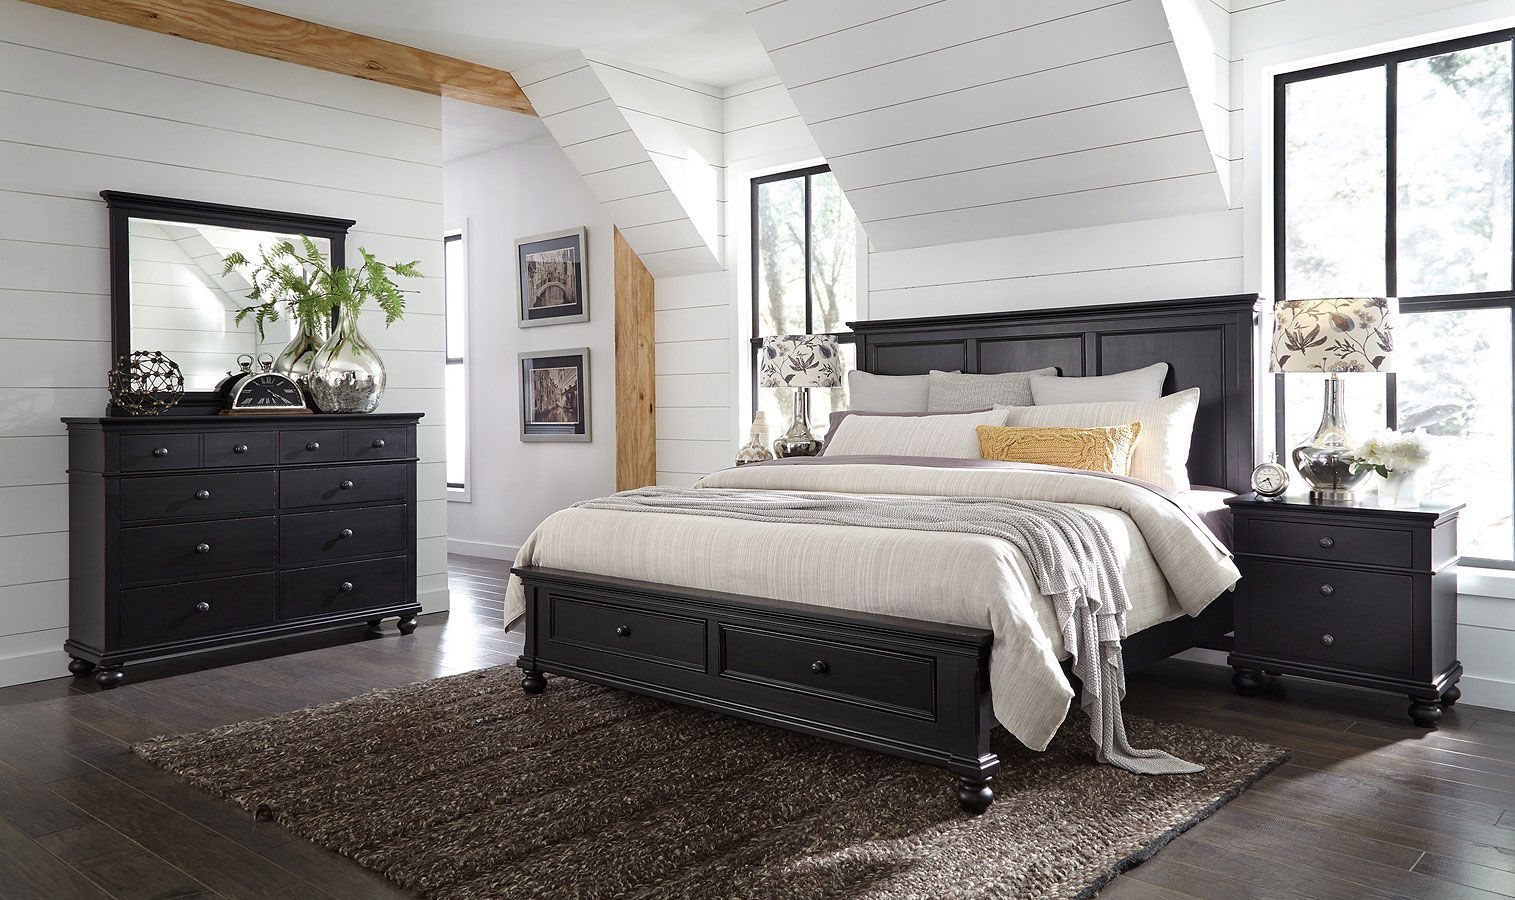 Oxford Panel Storage Bedroom Set Rubbed Black In 2020 Furniture Bedroom Storage King